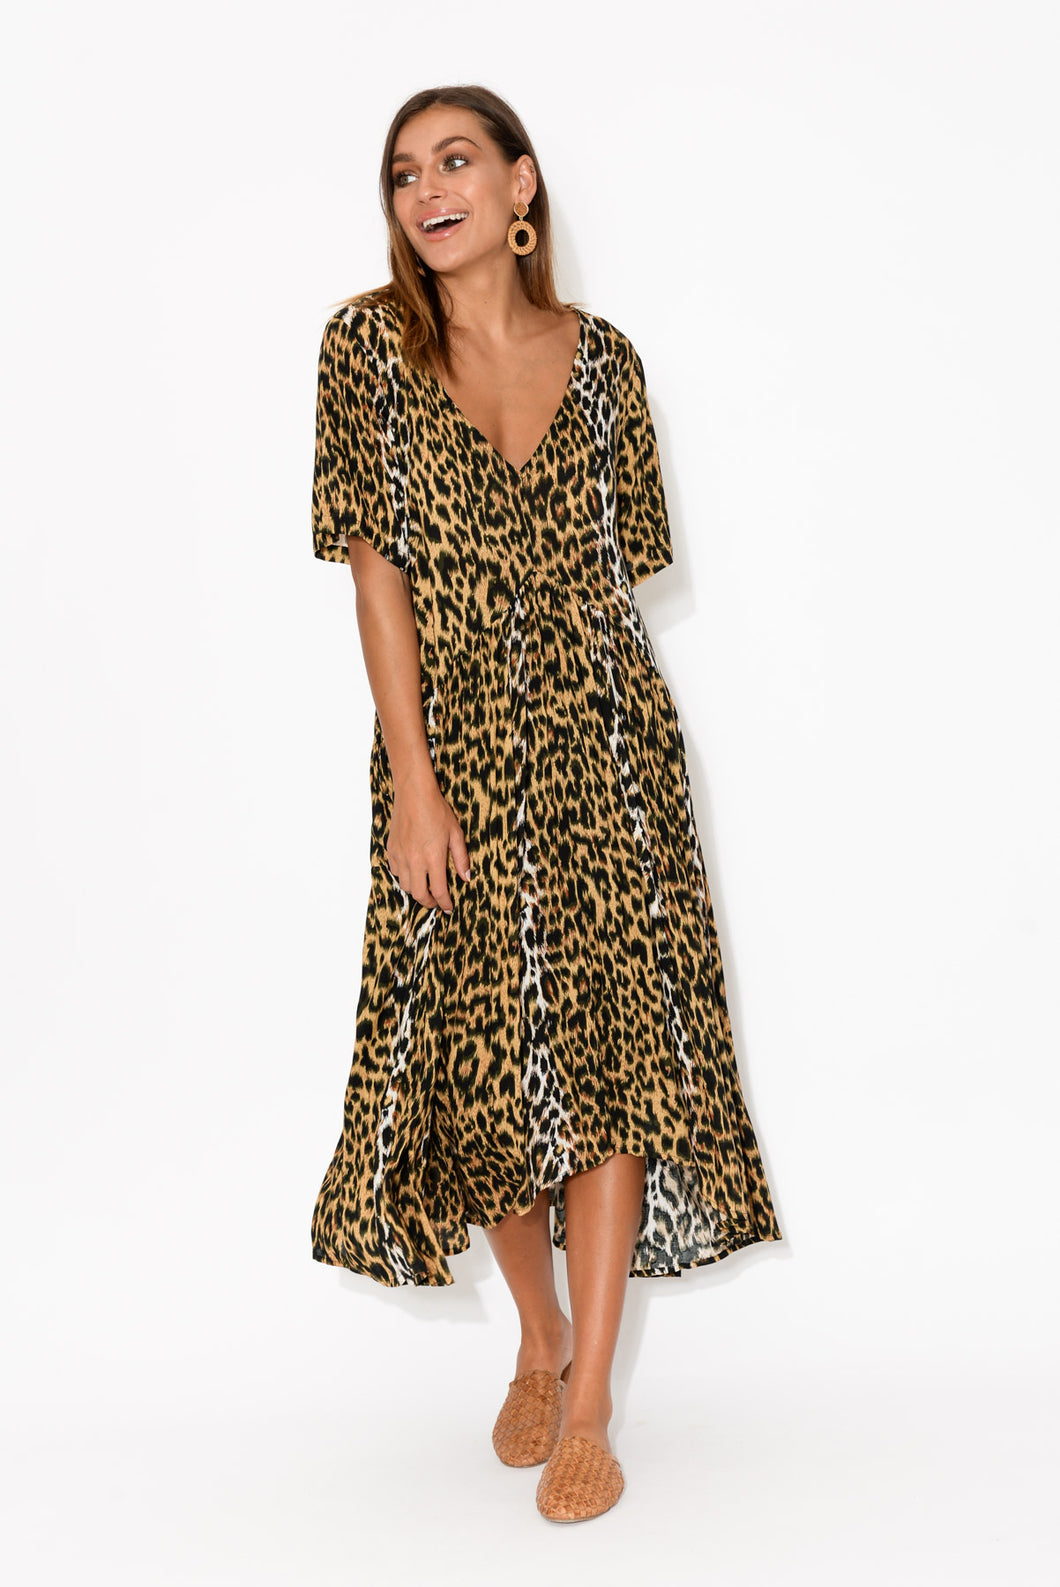 Ada Dark Leopard Gather Dress - Blue Bungalow